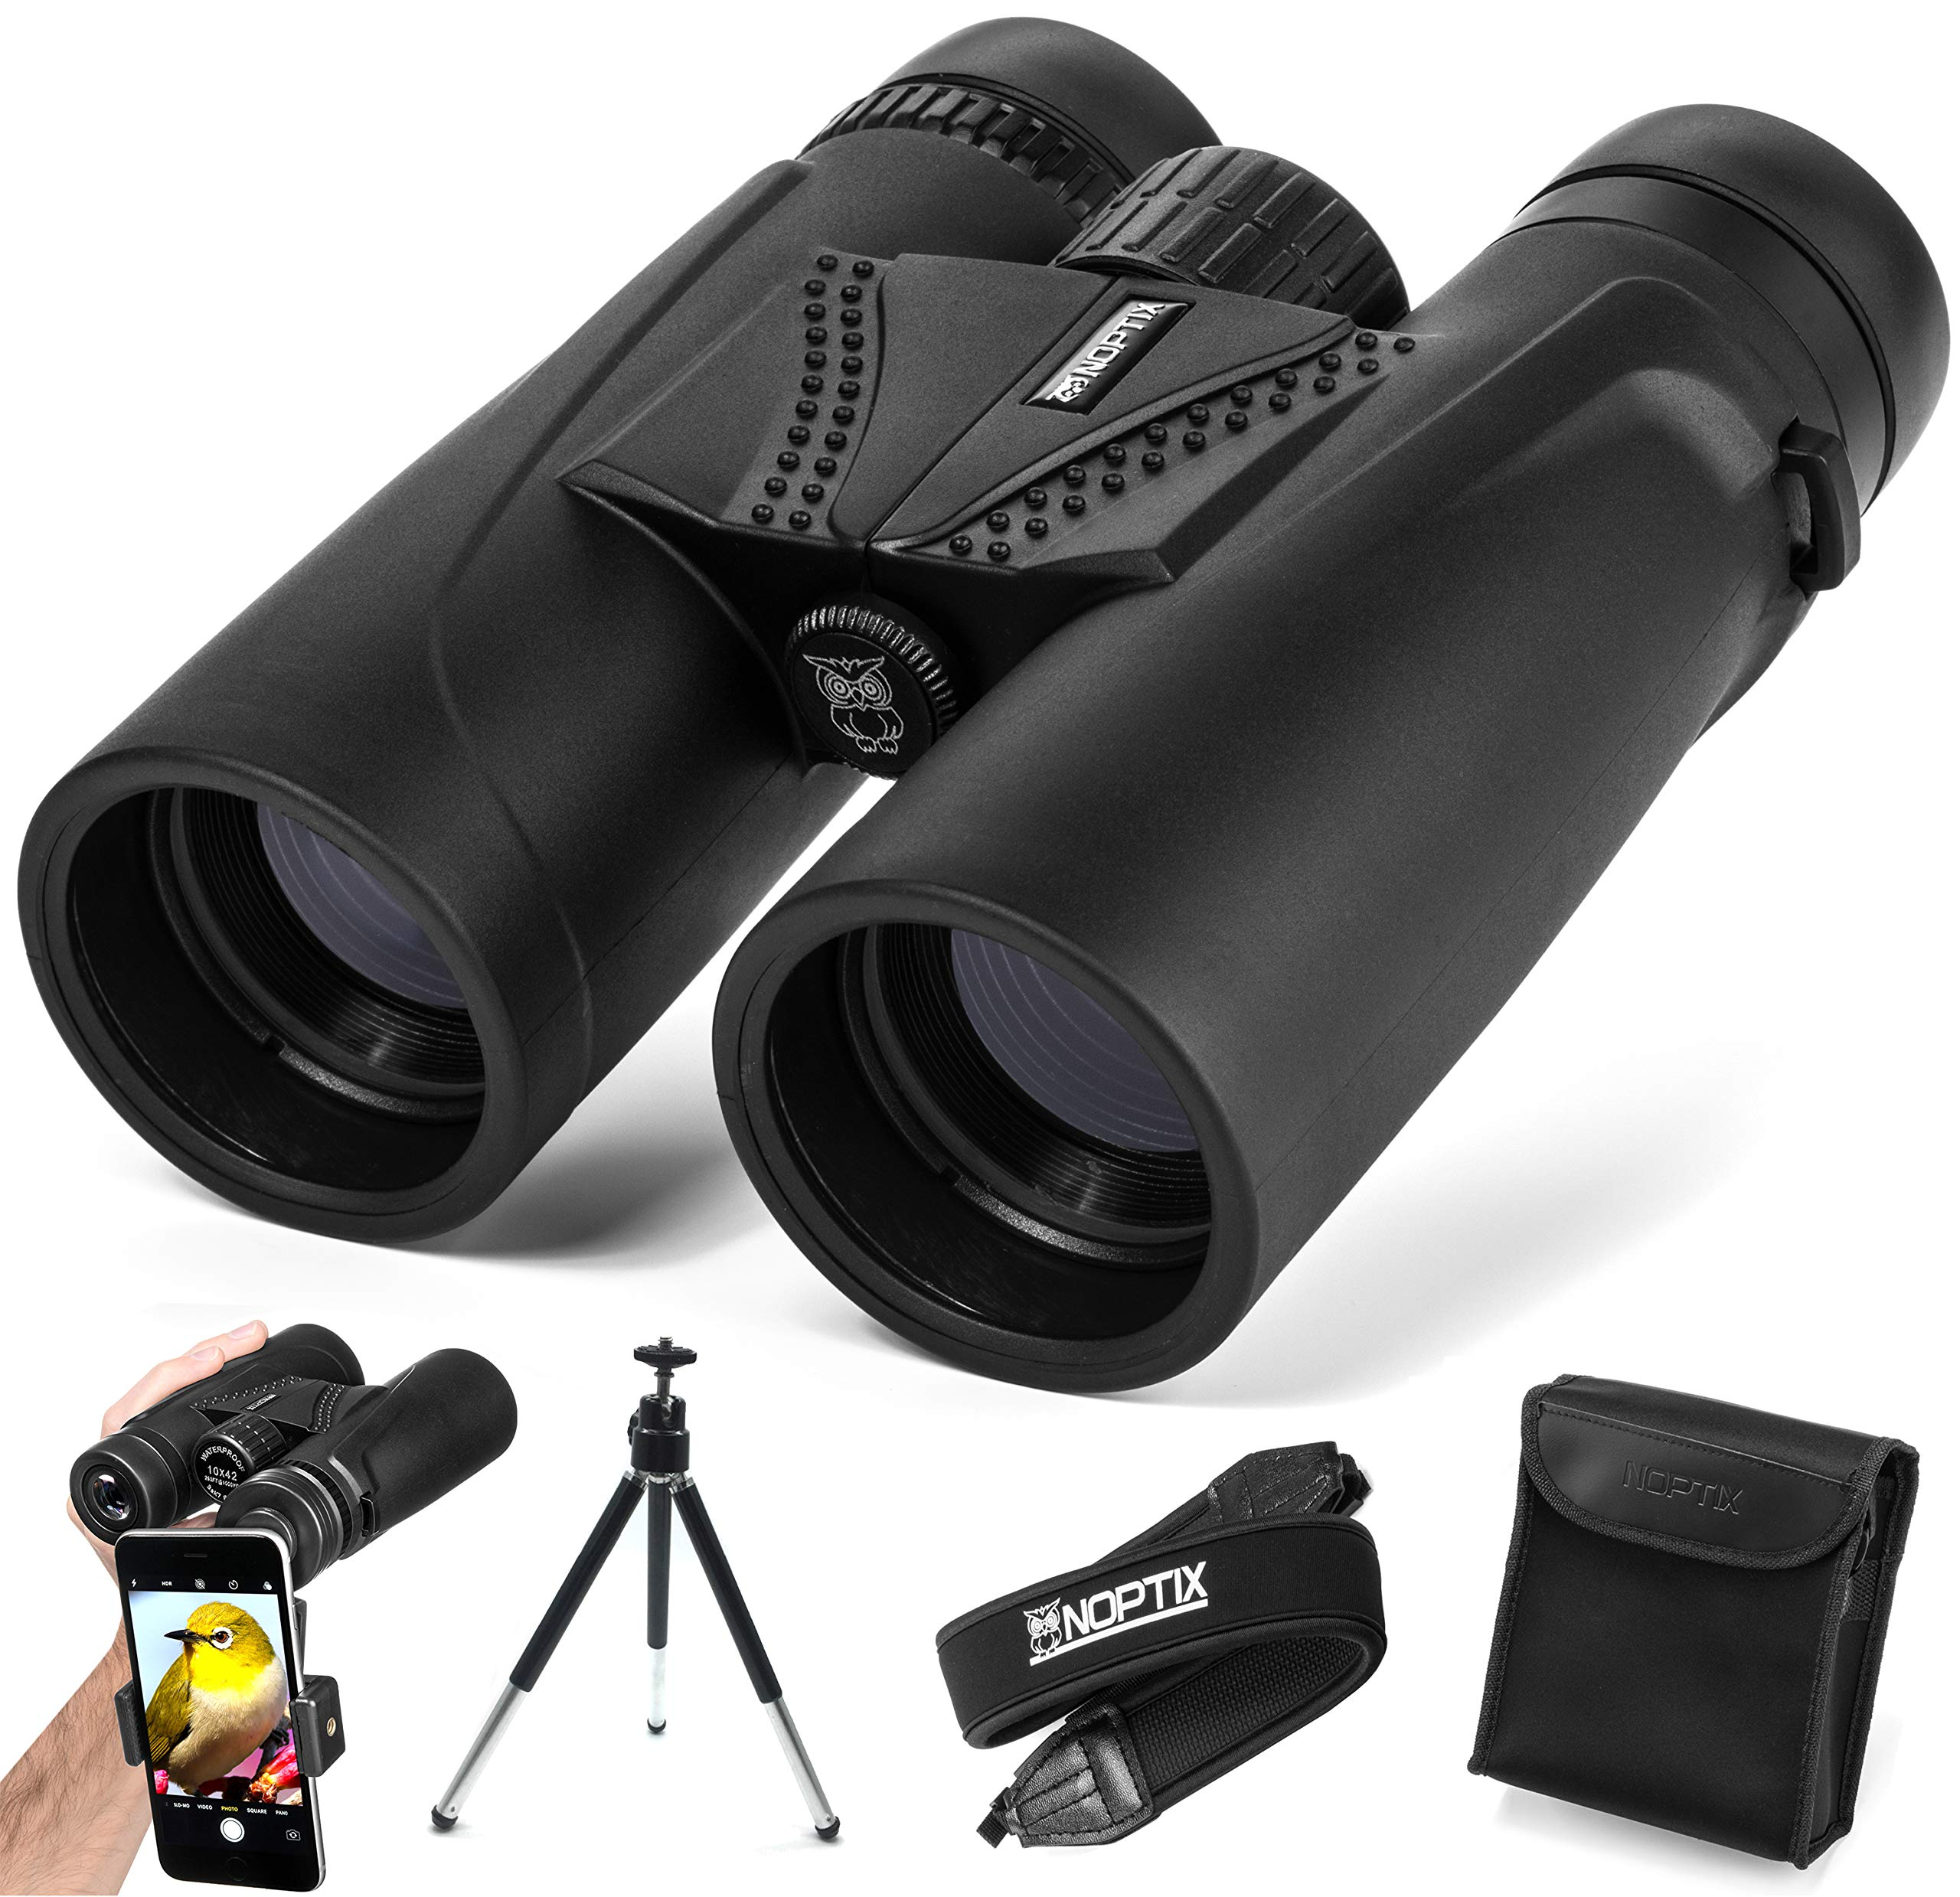 Binoculars 10x42 | Compact and Lightweight | Best for Adults, Bird Watching, Sports Events, Concerts, Safari, or Hunting - Includes Smart Phone Adapter, Tripod, Neck Strap, Case, and Cleaning Cloth by NOPTIX